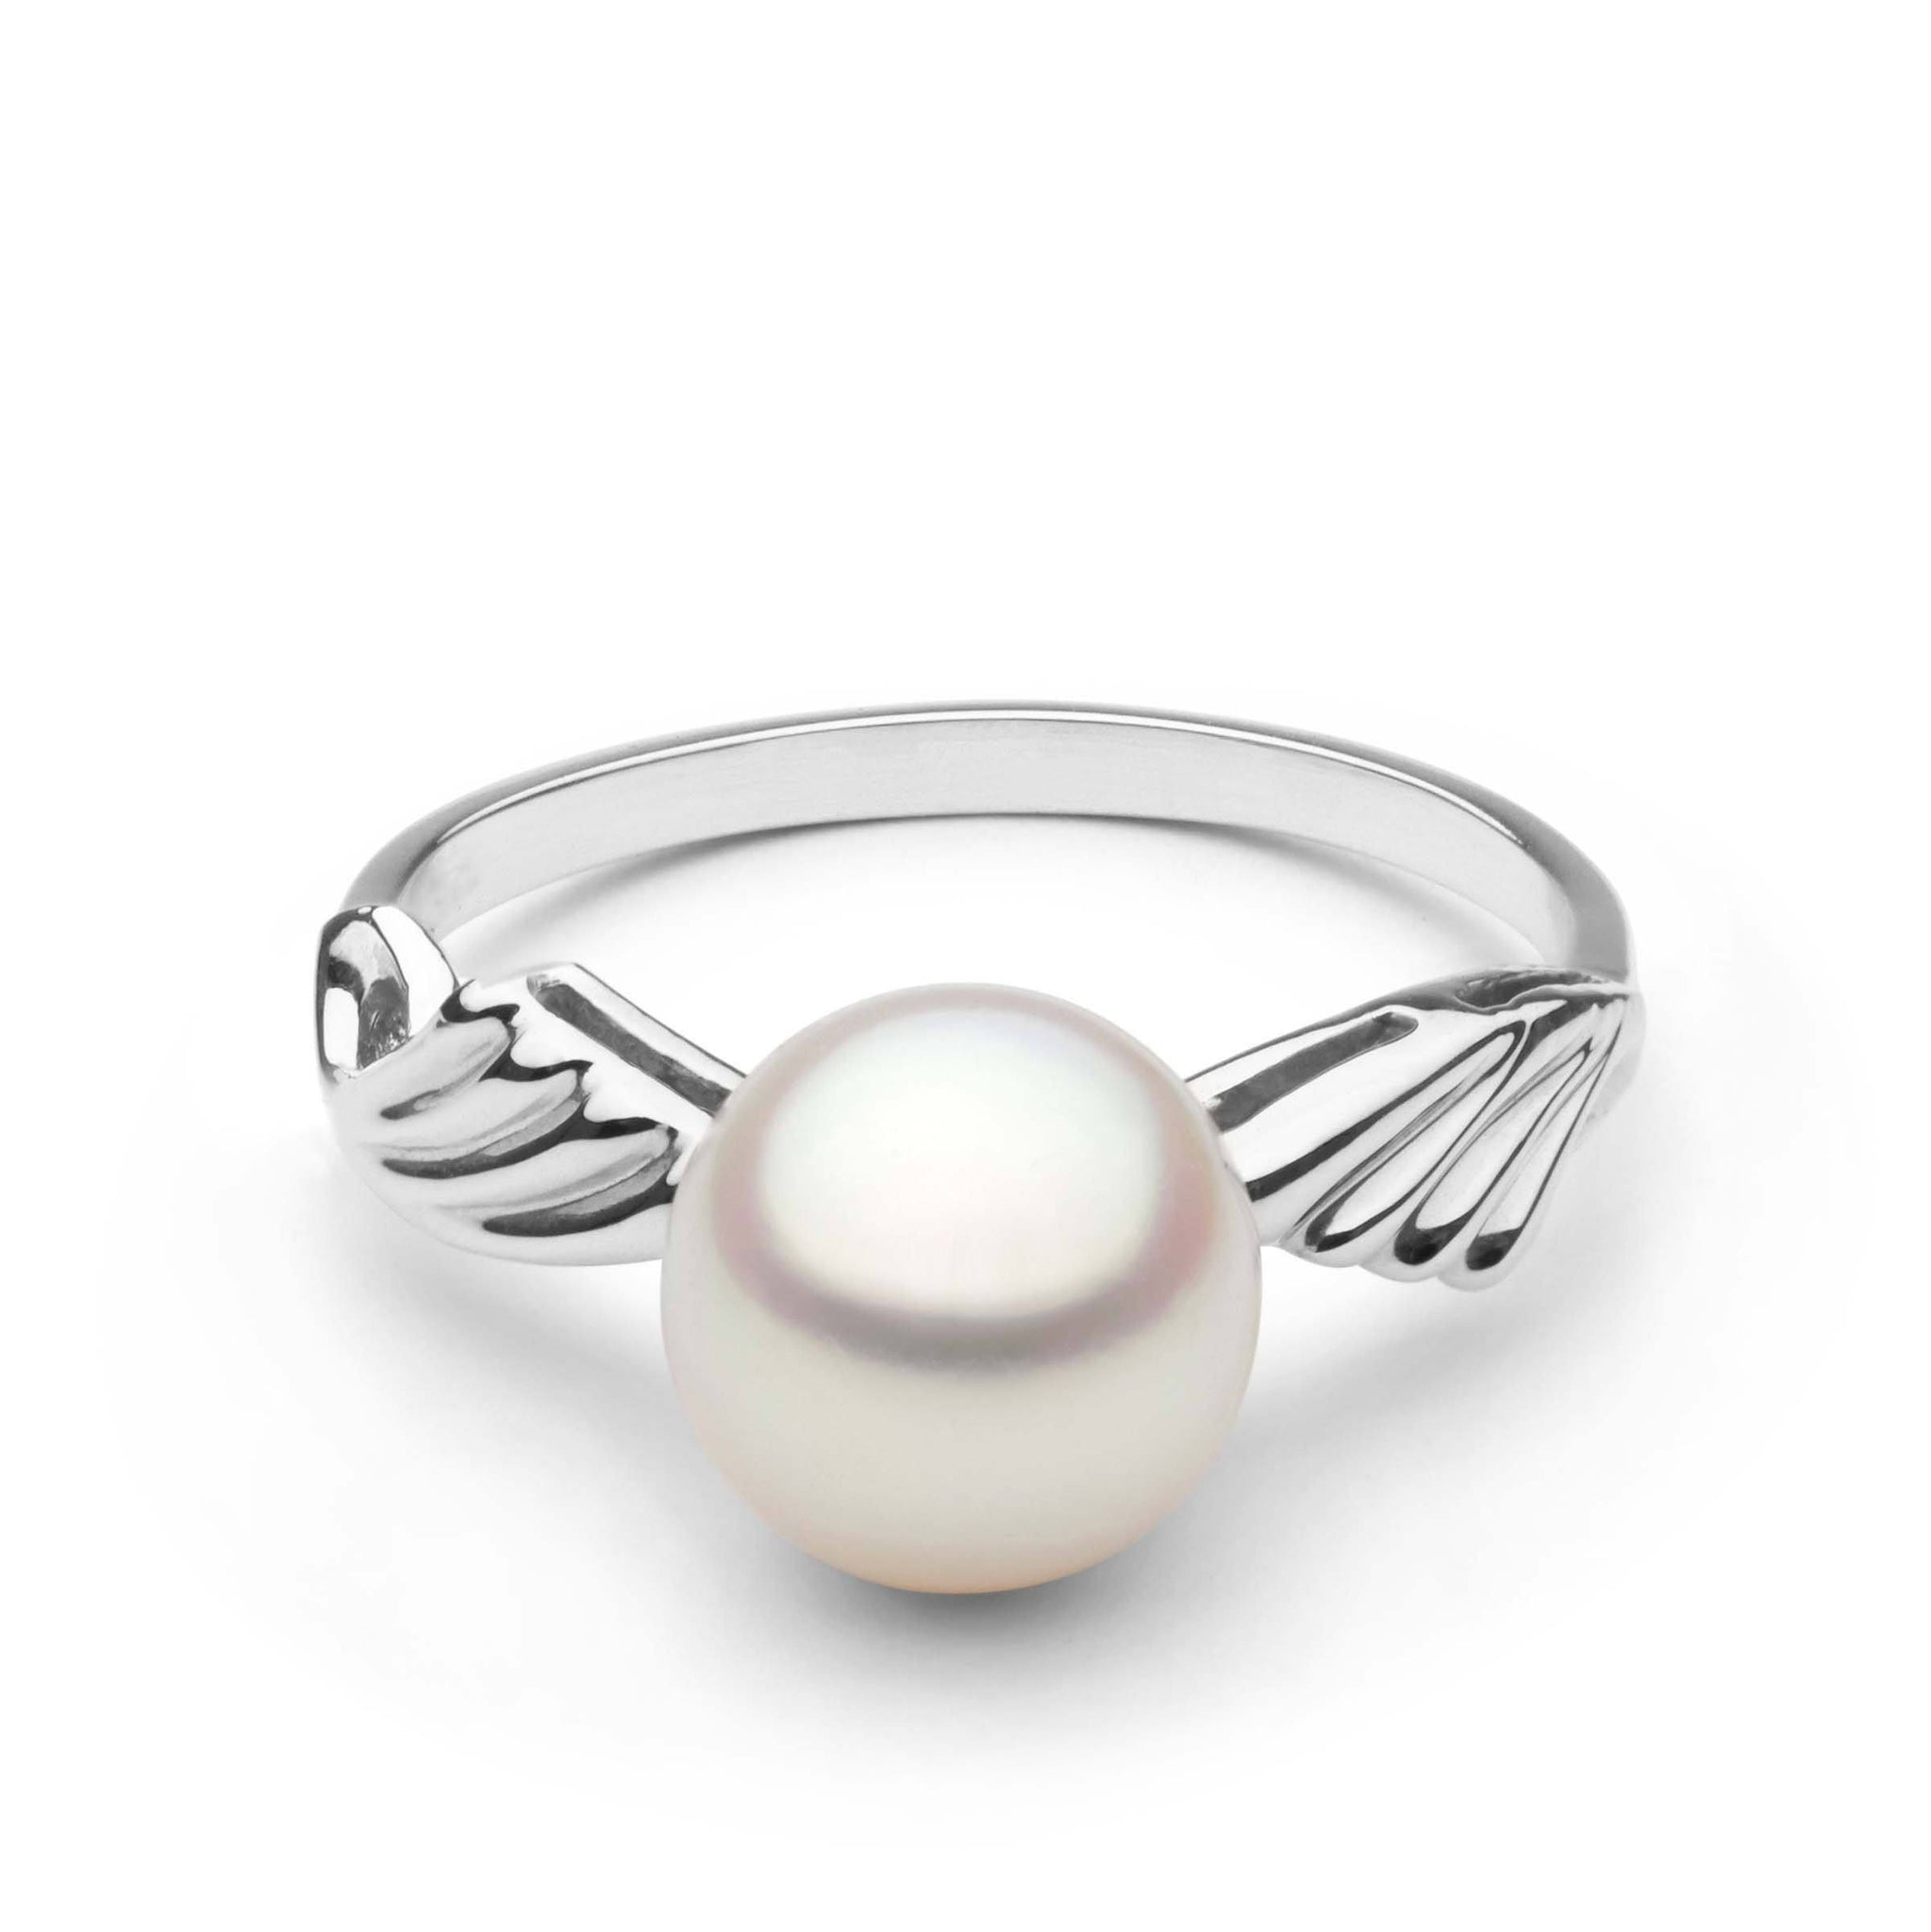 bea2b2bdc ascend-collection-akoya-pearl-ring -in-sterling-silver-ring_2048x2048.jpg?v=1523347996